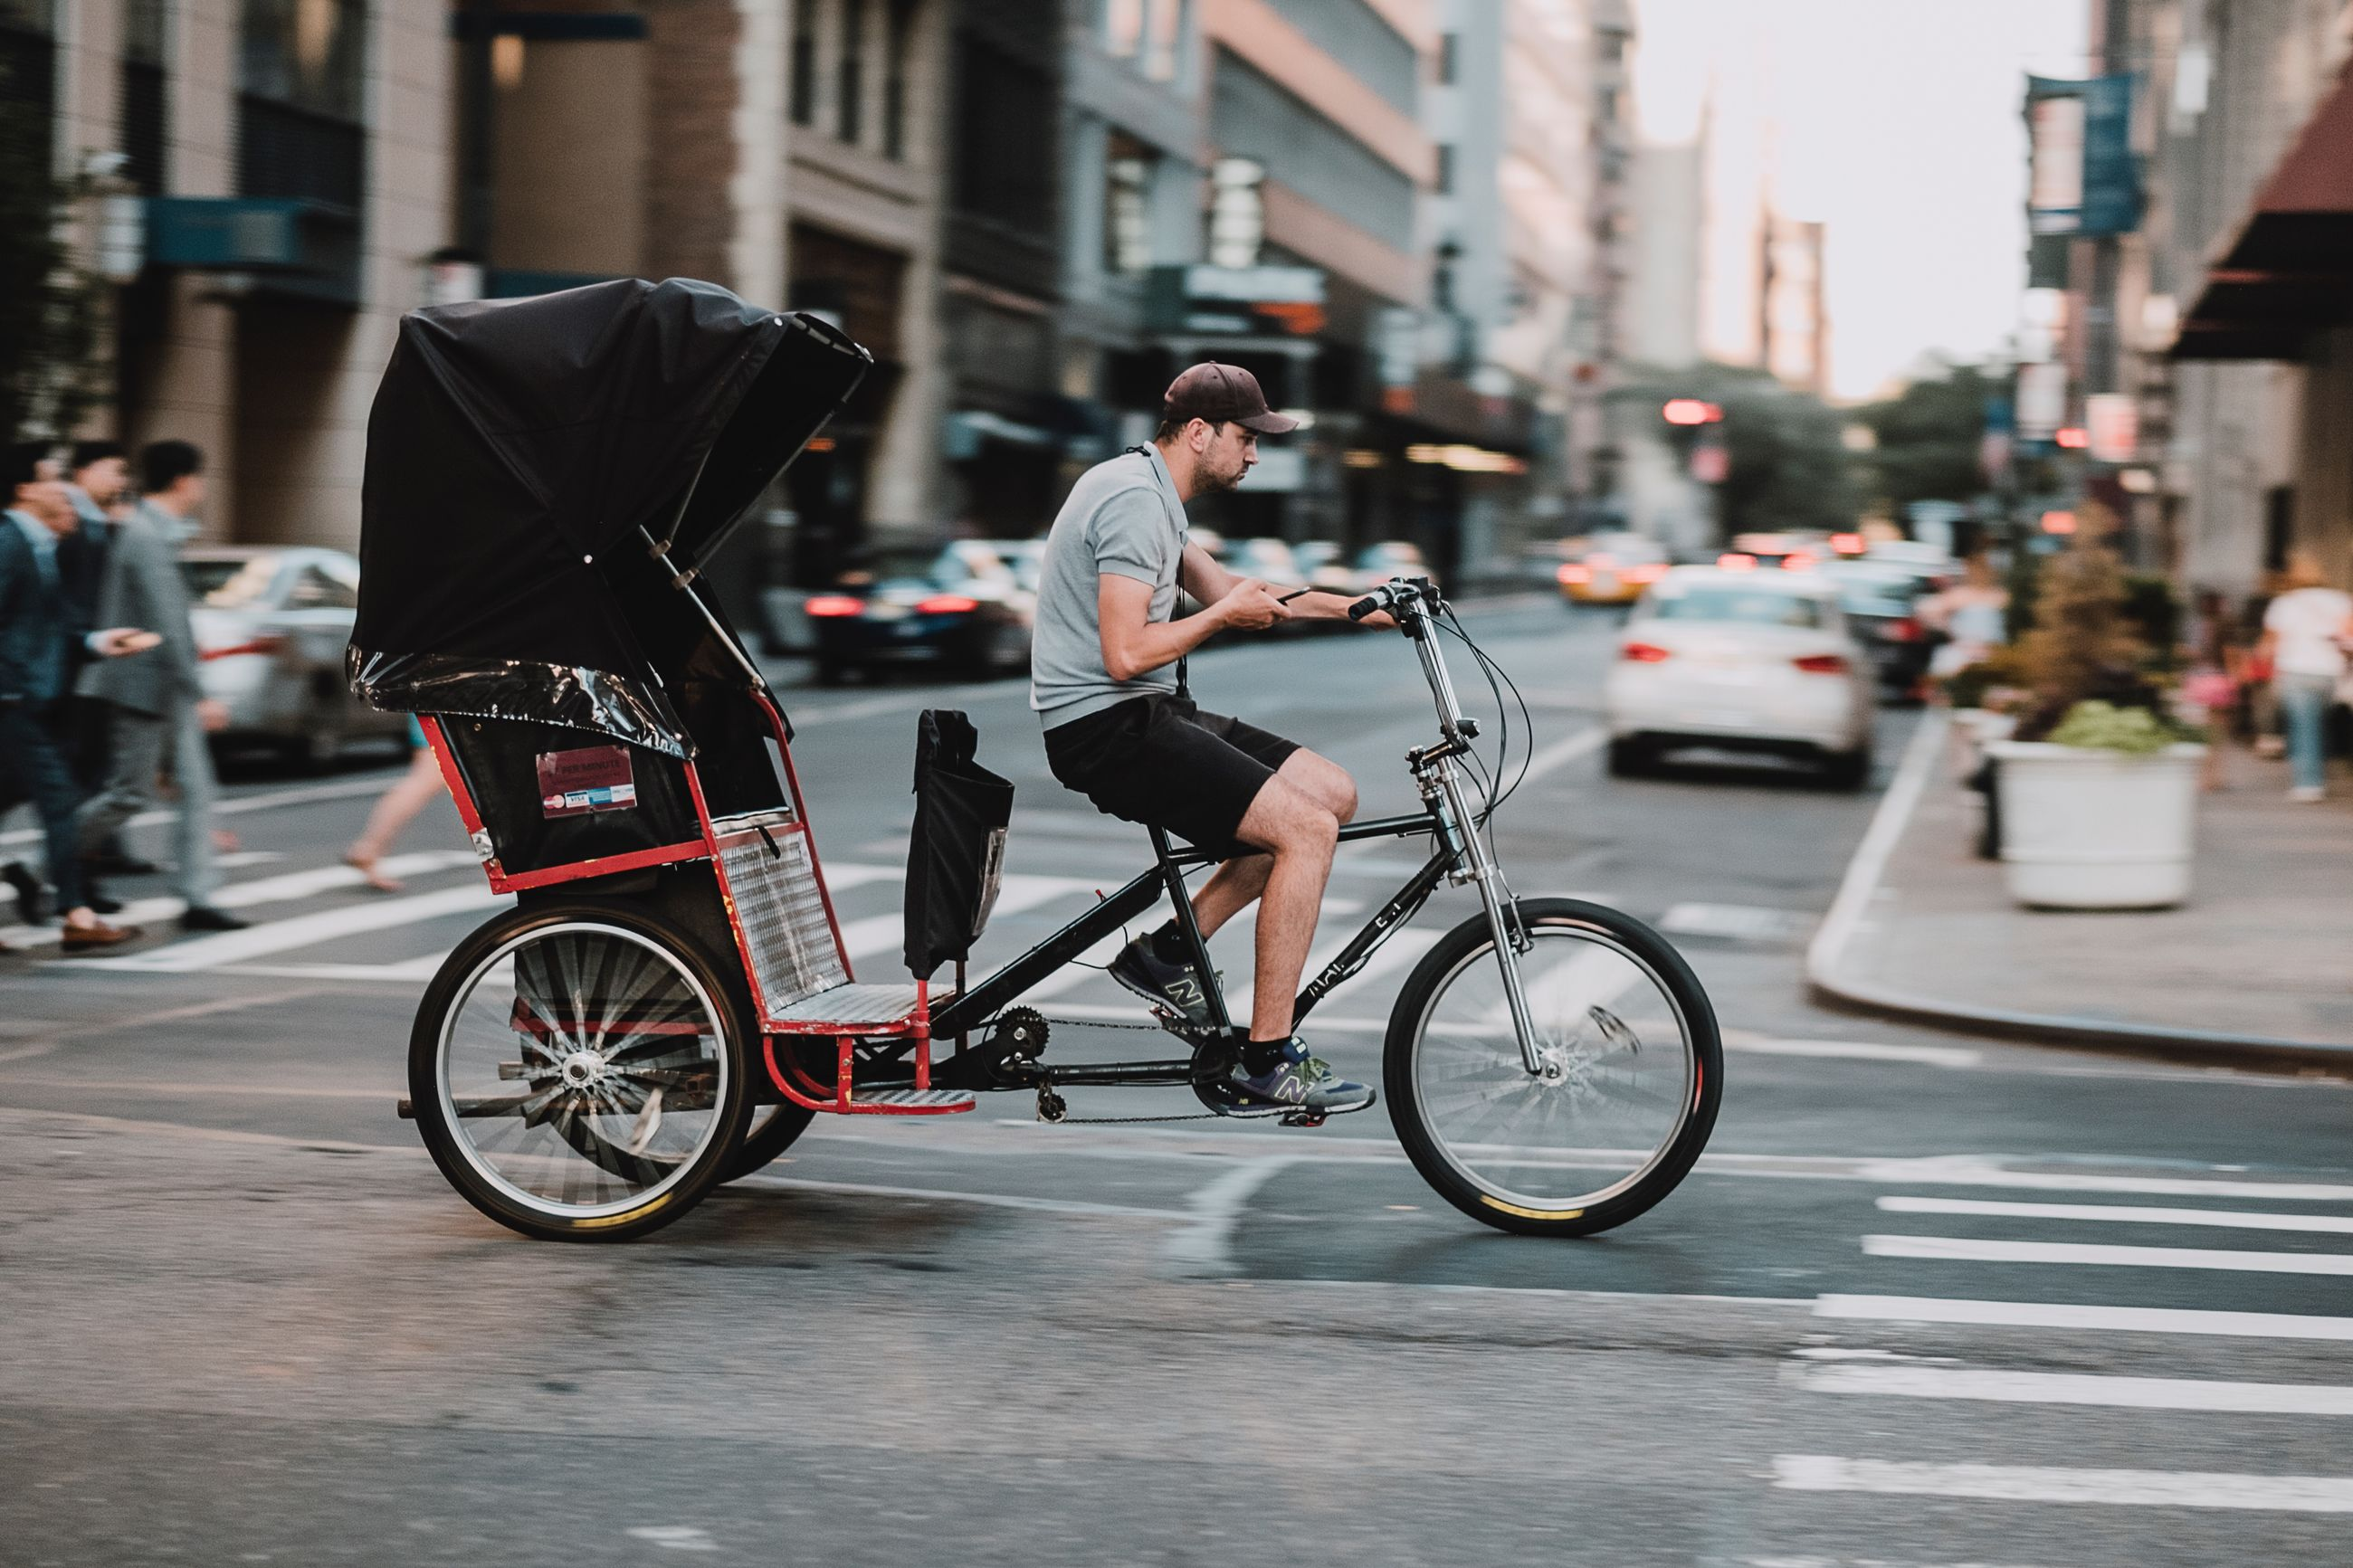 city, transportation, street, bicycle, mode of transportation, real people, architecture, full length, building exterior, land vehicle, lifestyles, one person, riding, ride, city street, city life, incidental people, focus on foreground, men, road, outdoors